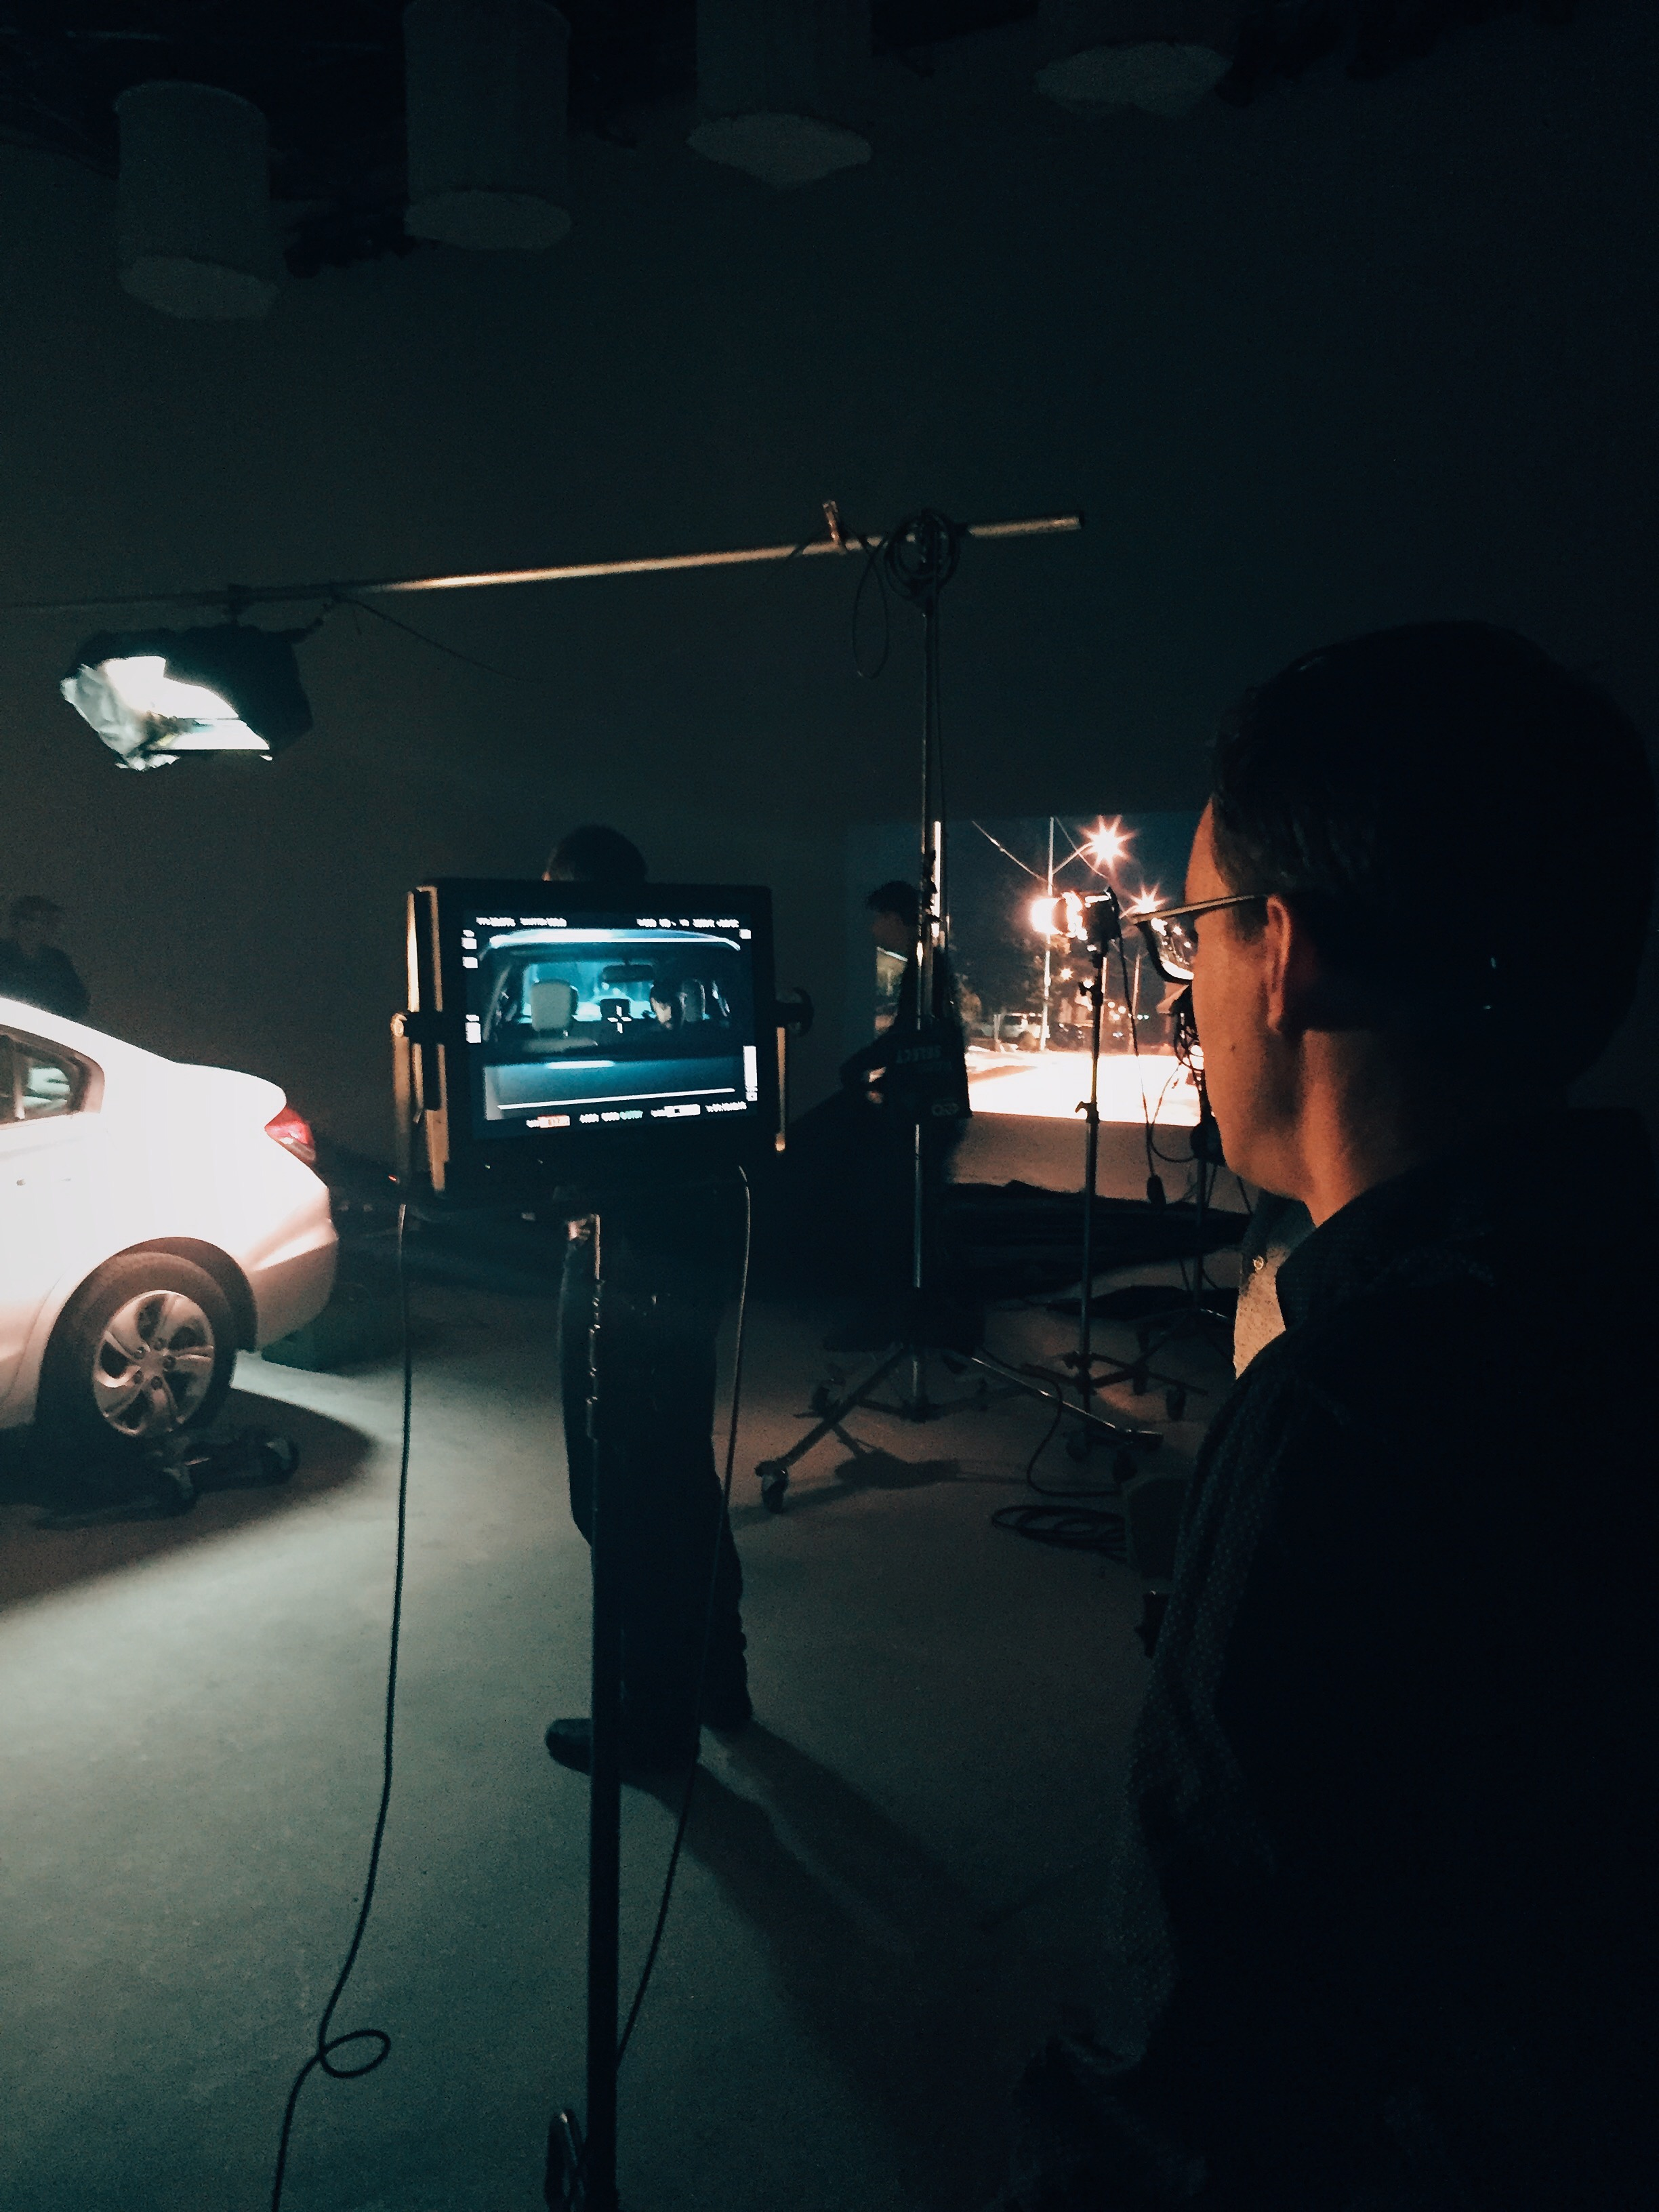 Behind the scenes of our first shoot featuring a full size car, front projection, and plenty of strategically placed lights